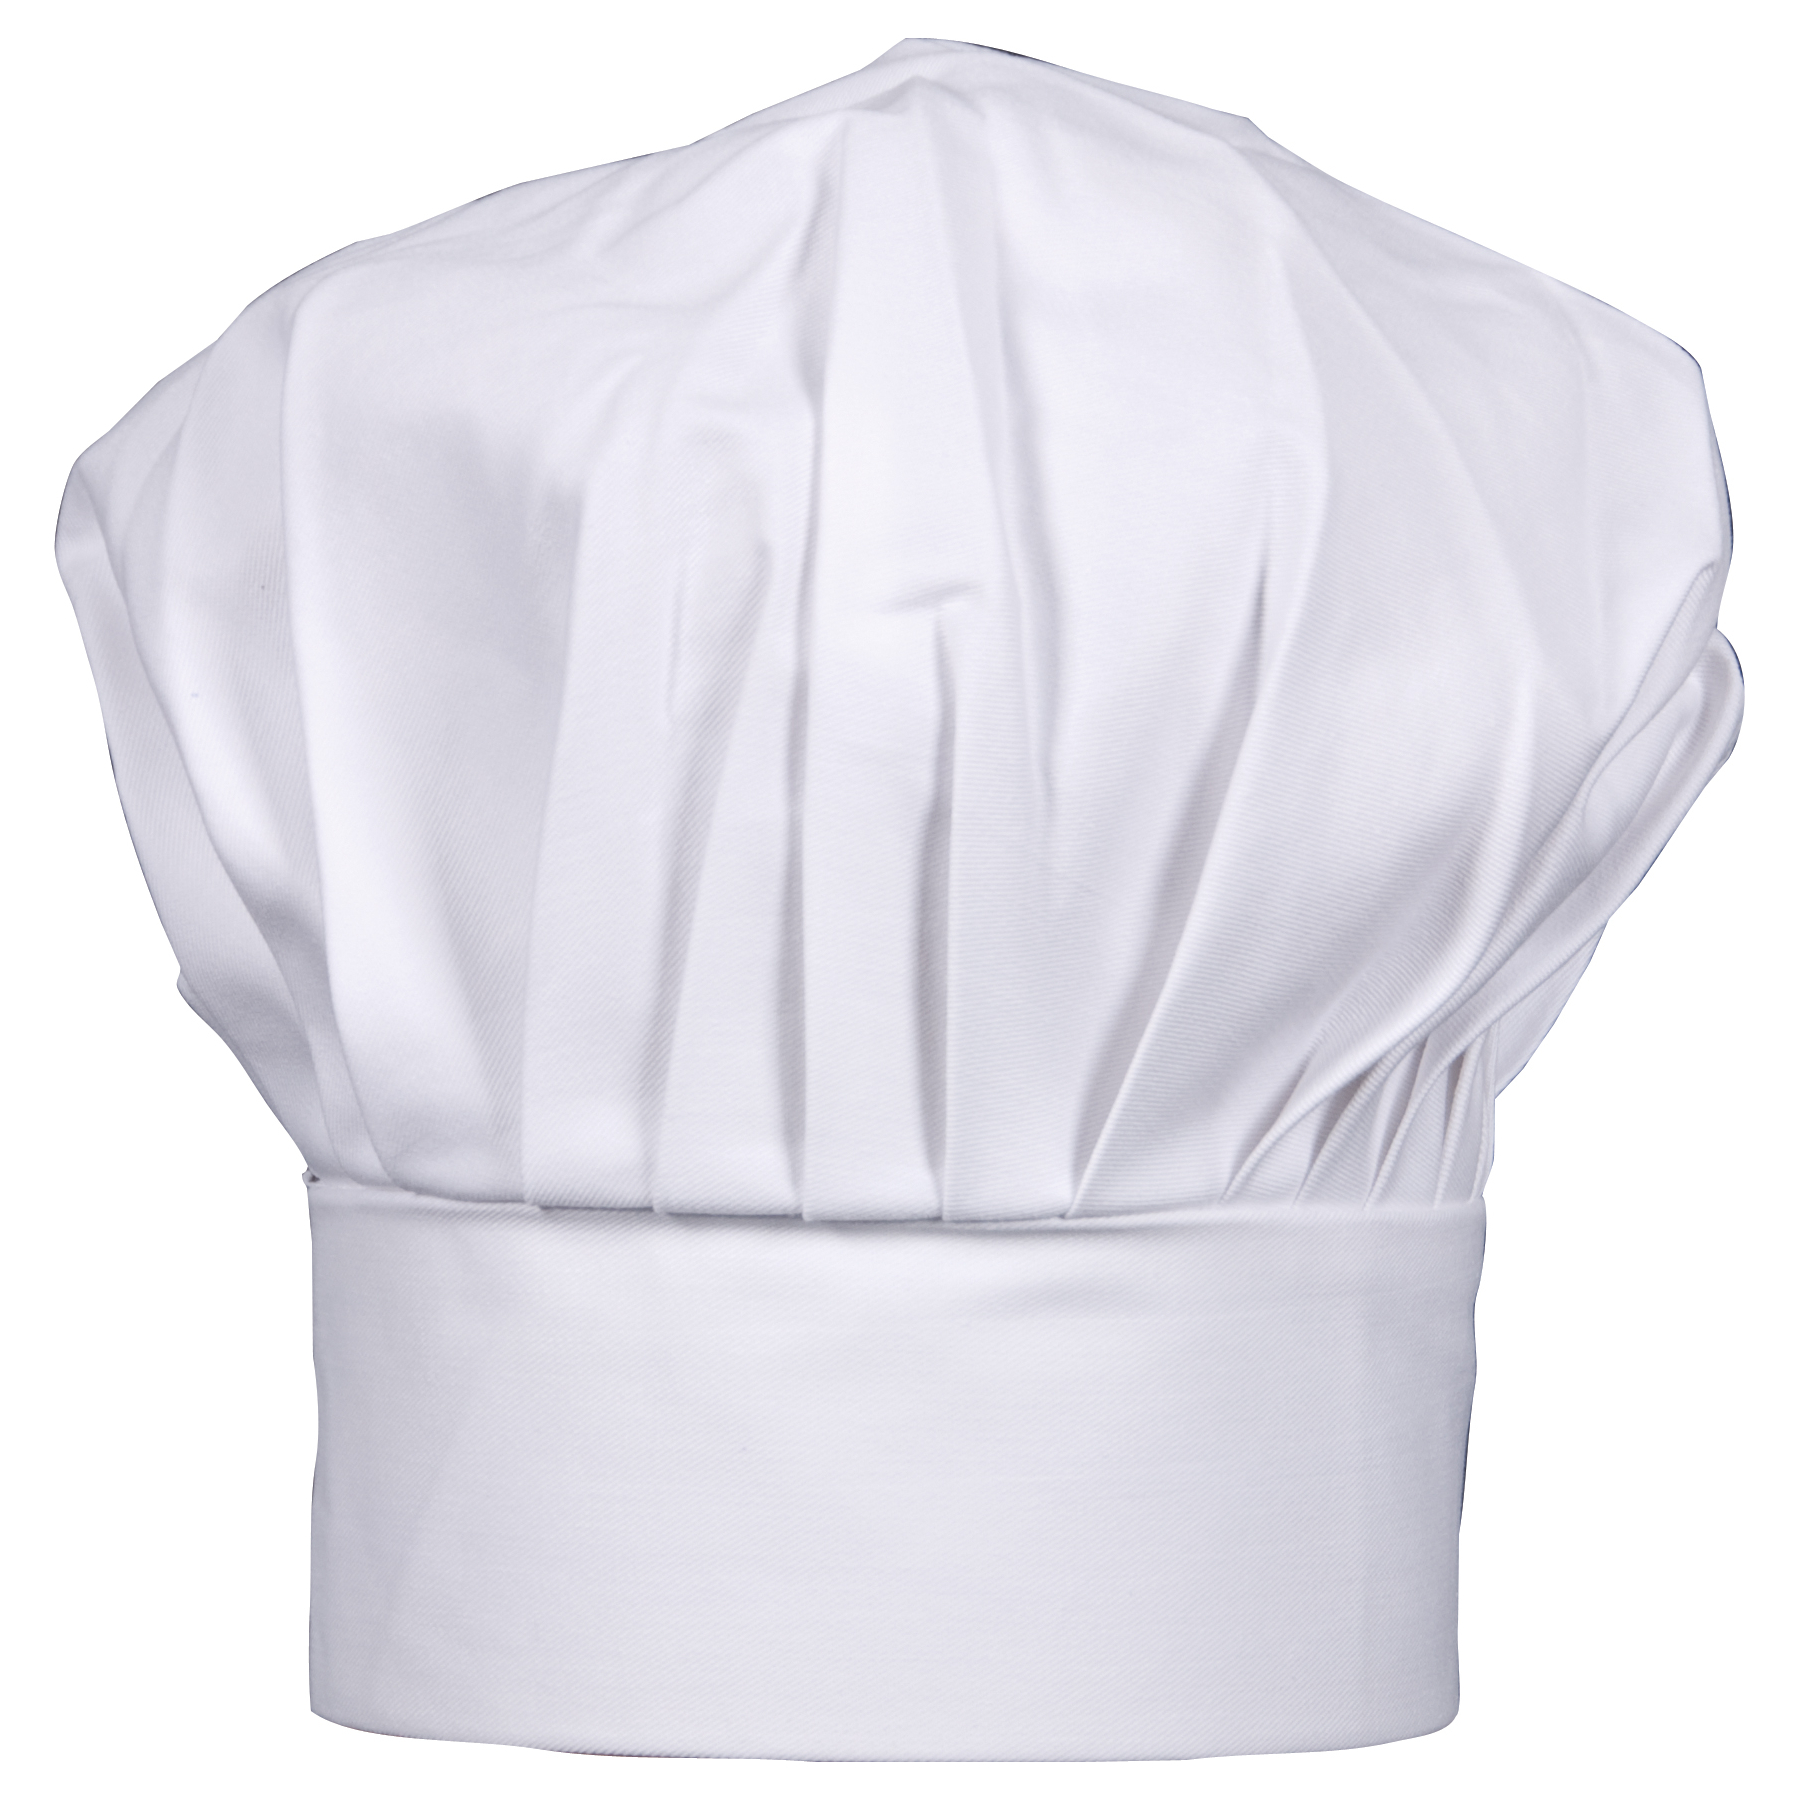 HIC Harold Import Co White Cotton 6 x 8 Inch Adult Size Chef Hat